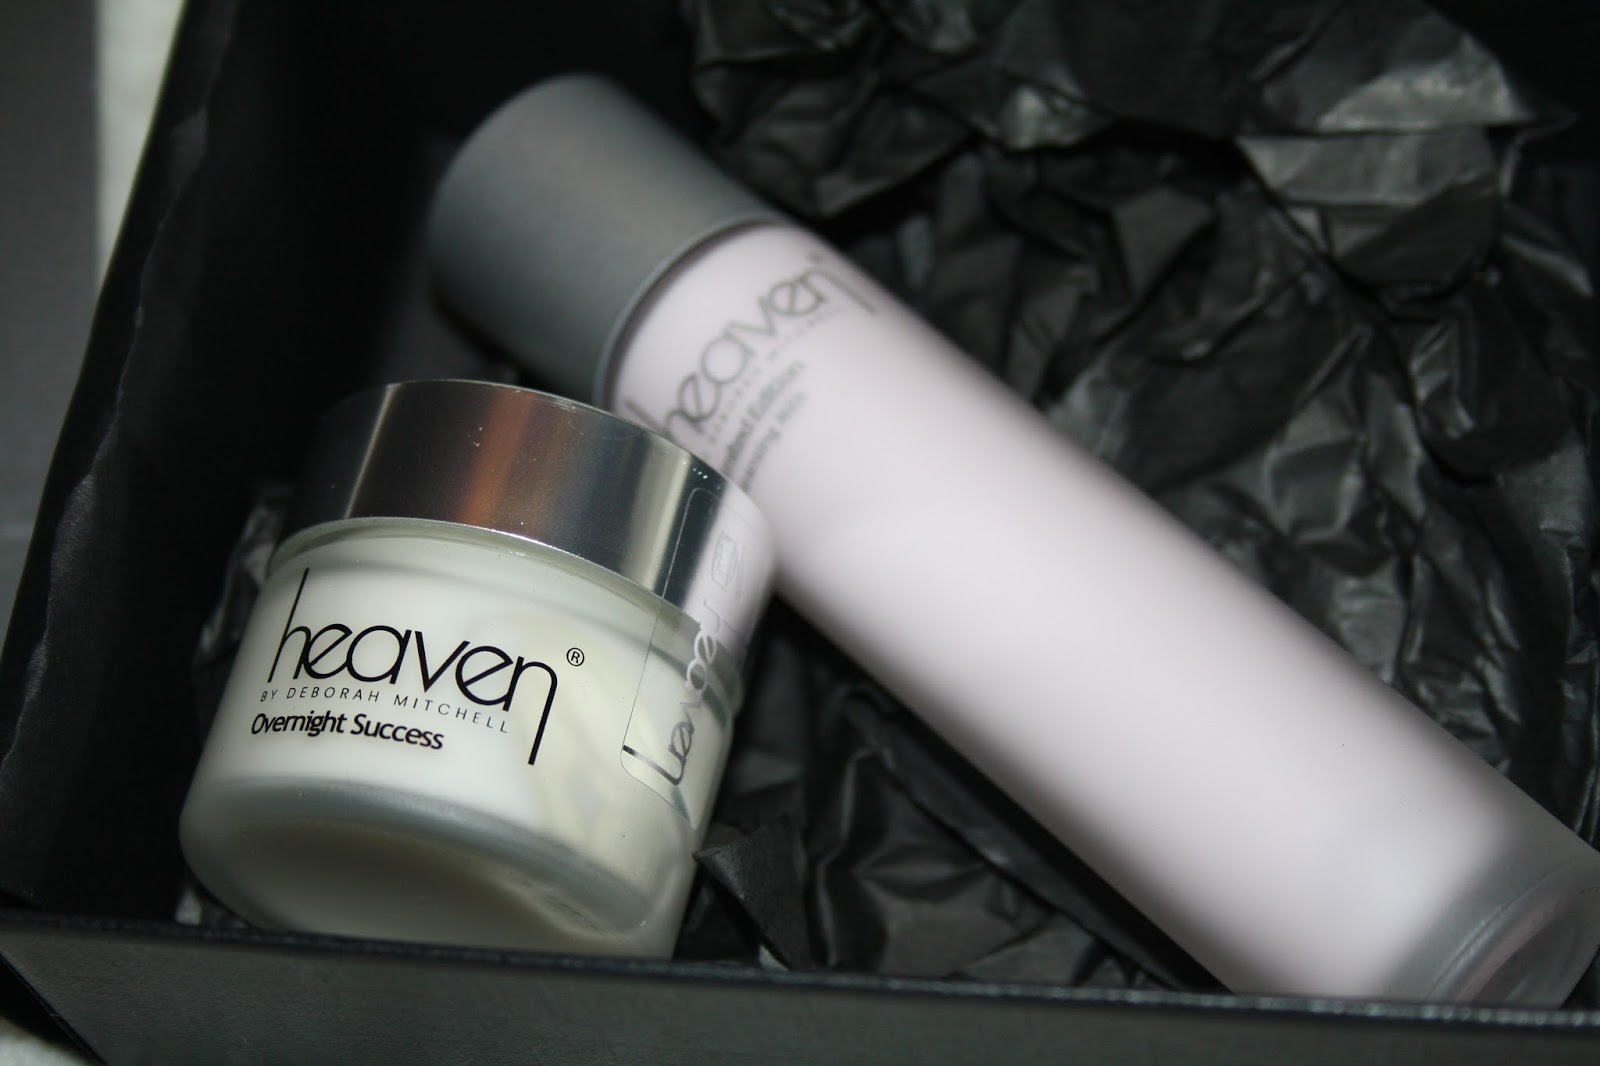 Heaven Skincare Giftset contents